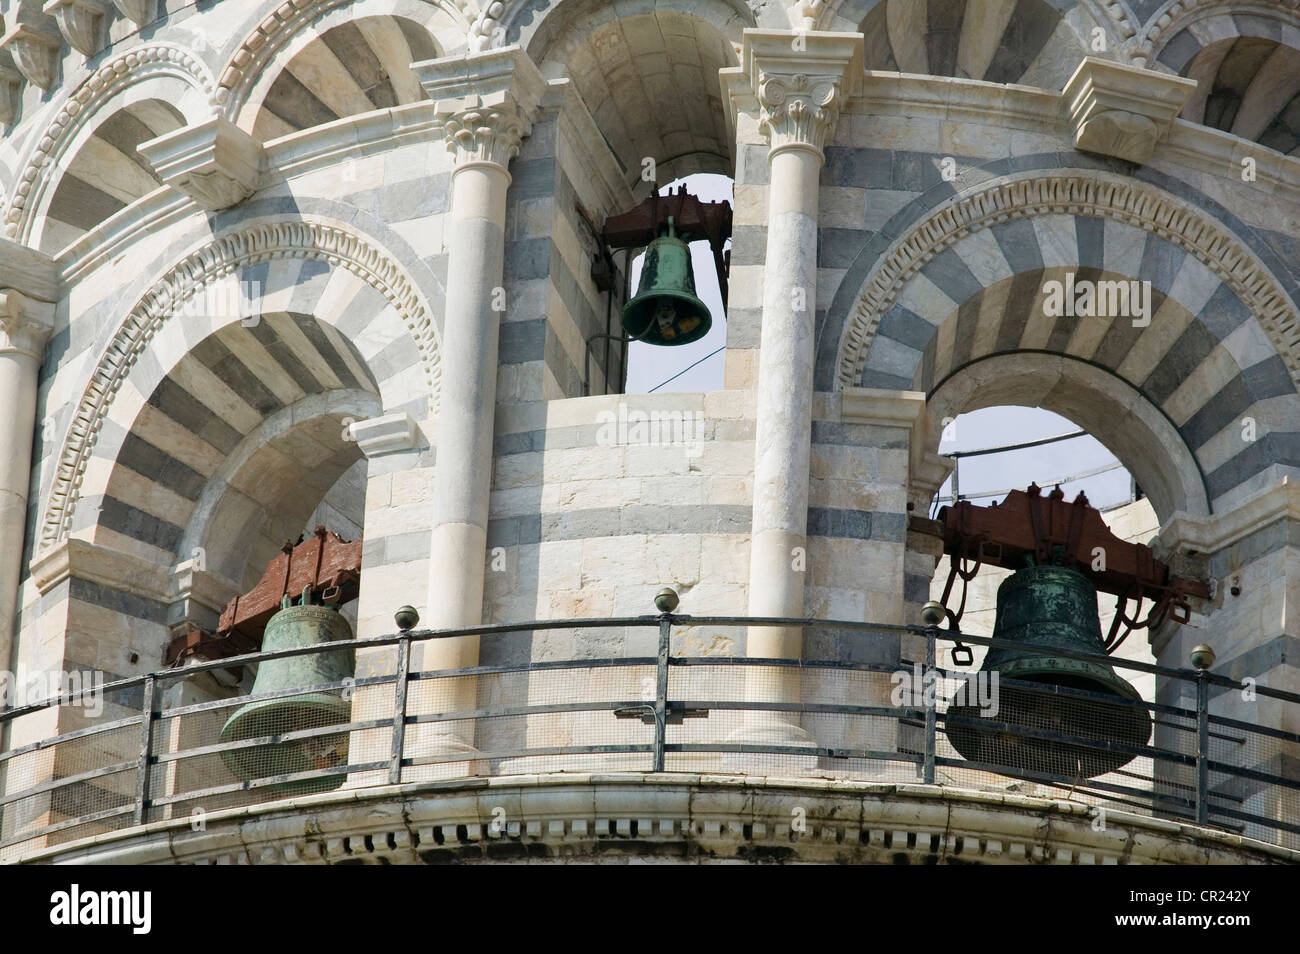 Close up of church bells in archways - Stock Image